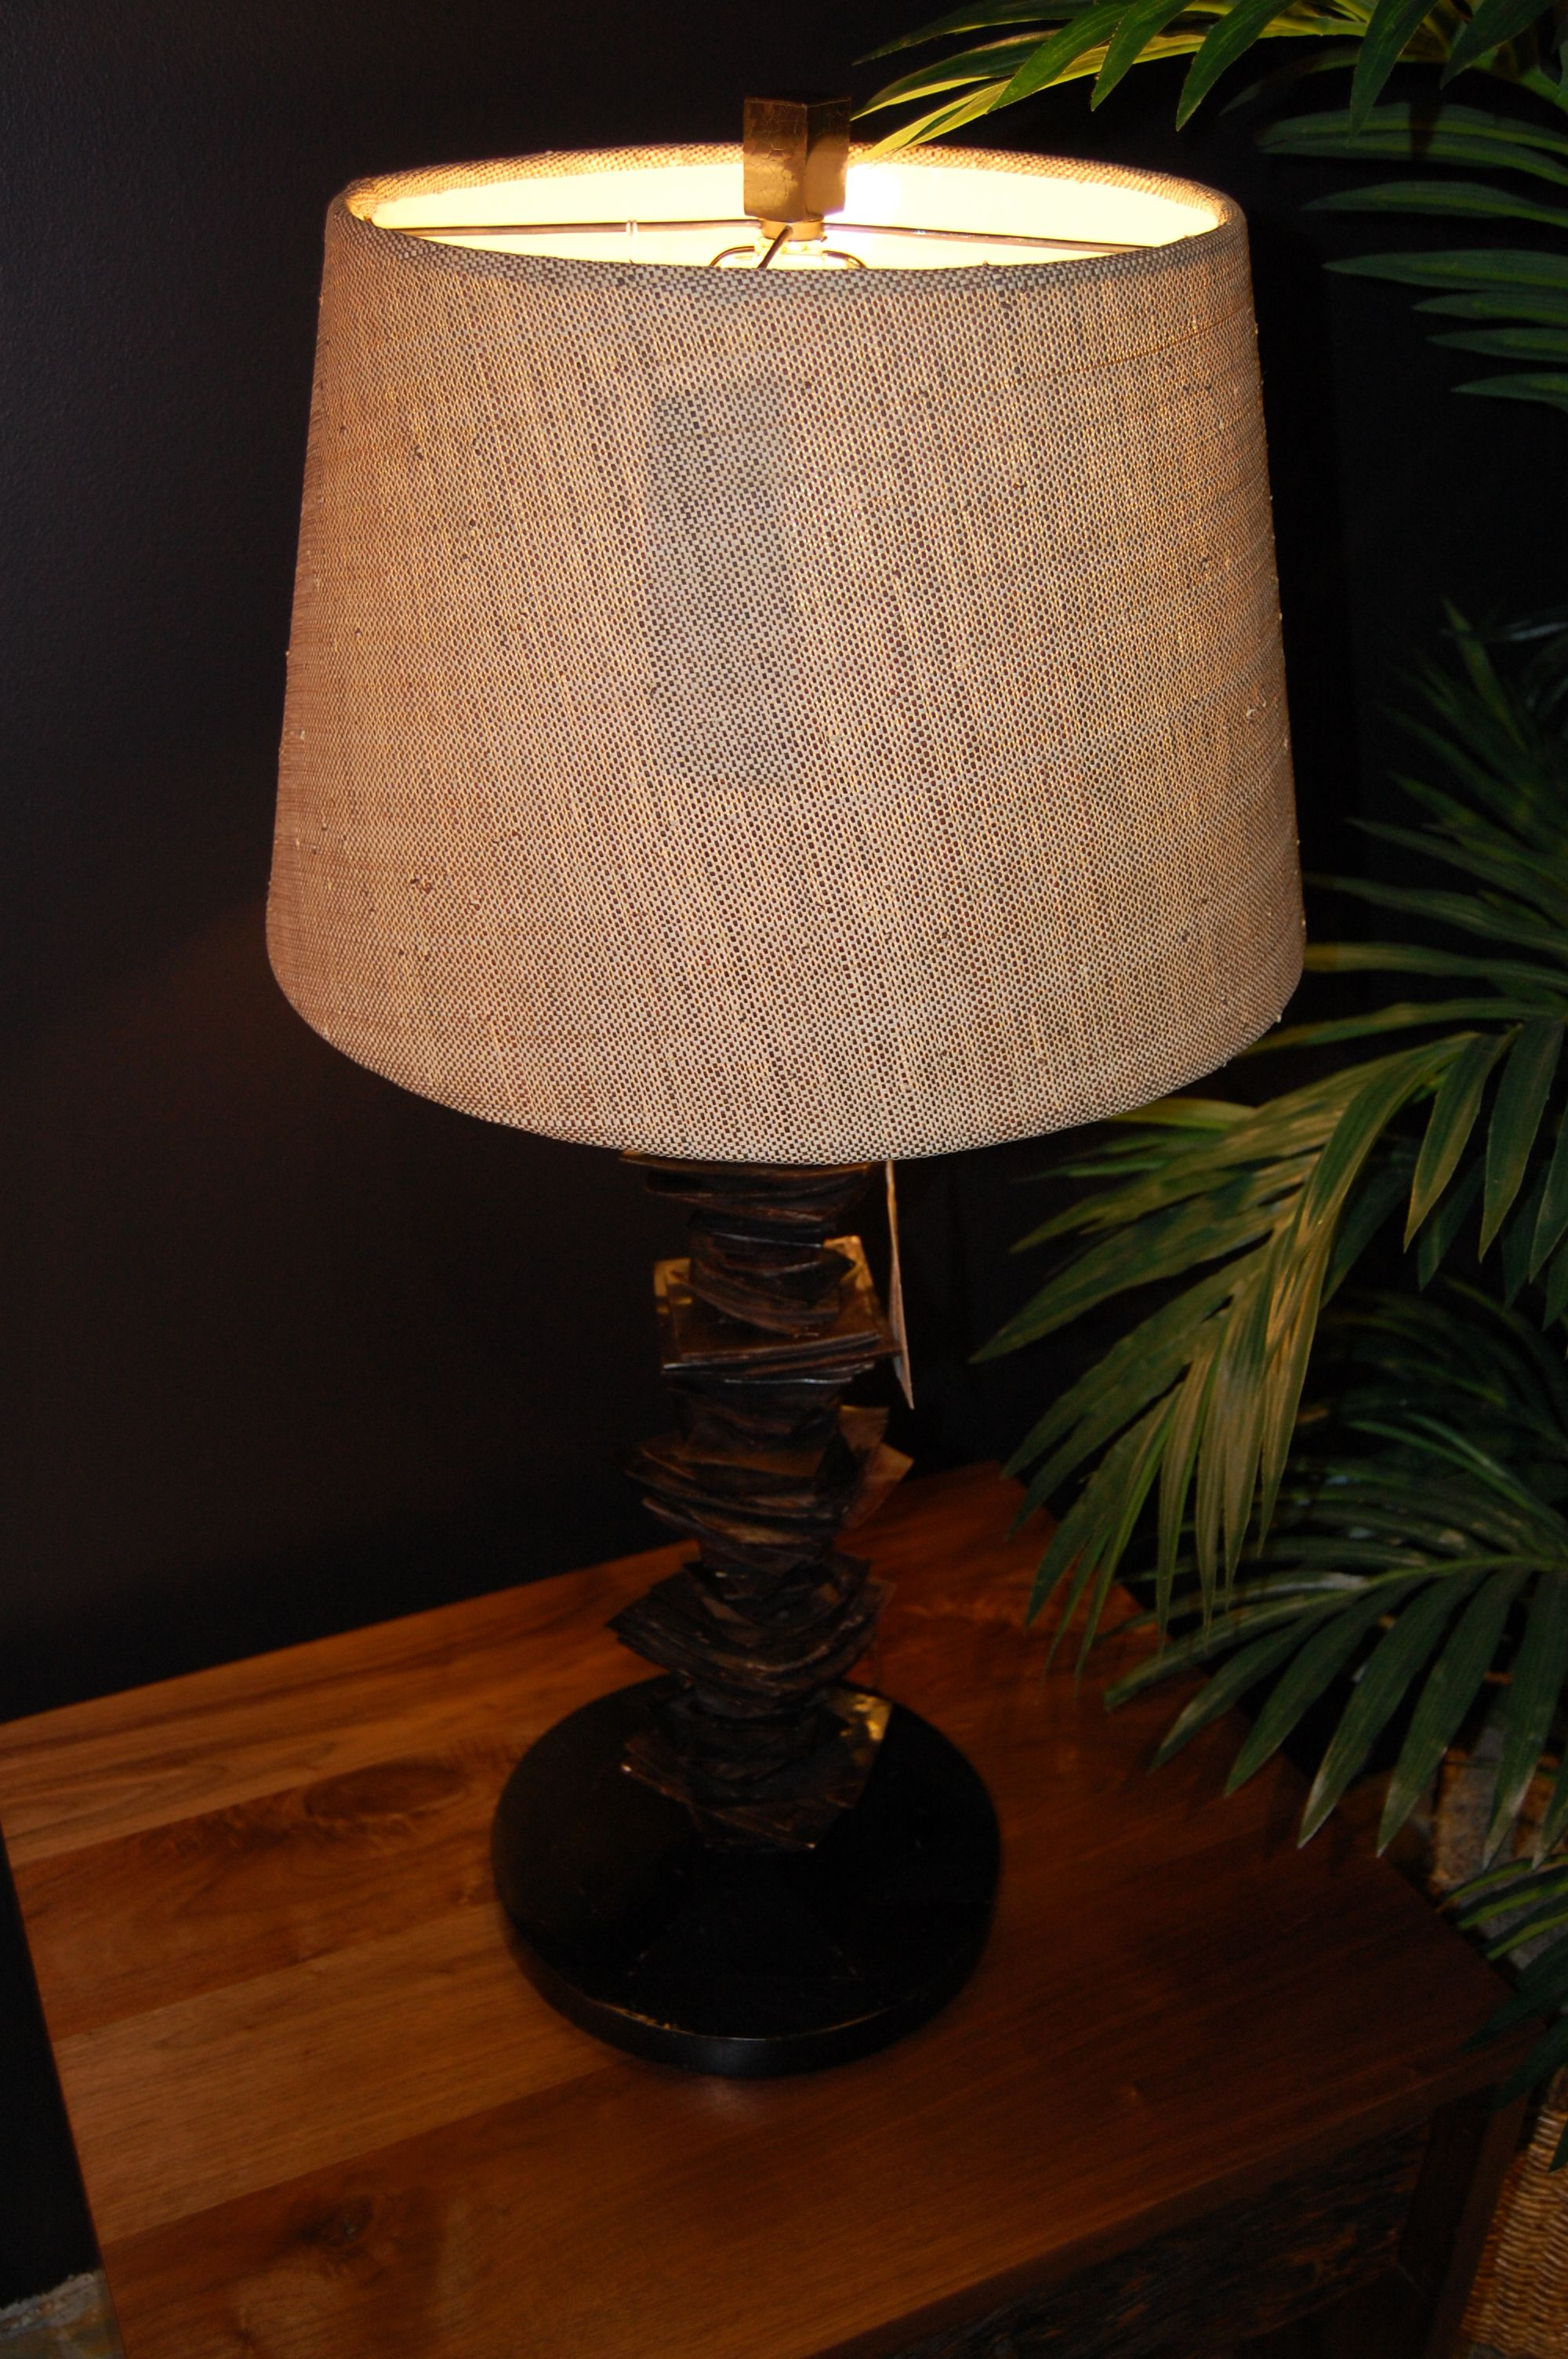 Ri Design Center Thomasville Ridc Designcenter Ri Thomasville Furniture Decor Home House Decorate Furnish With Images Beautiful Lamp Lamp Table Lamp